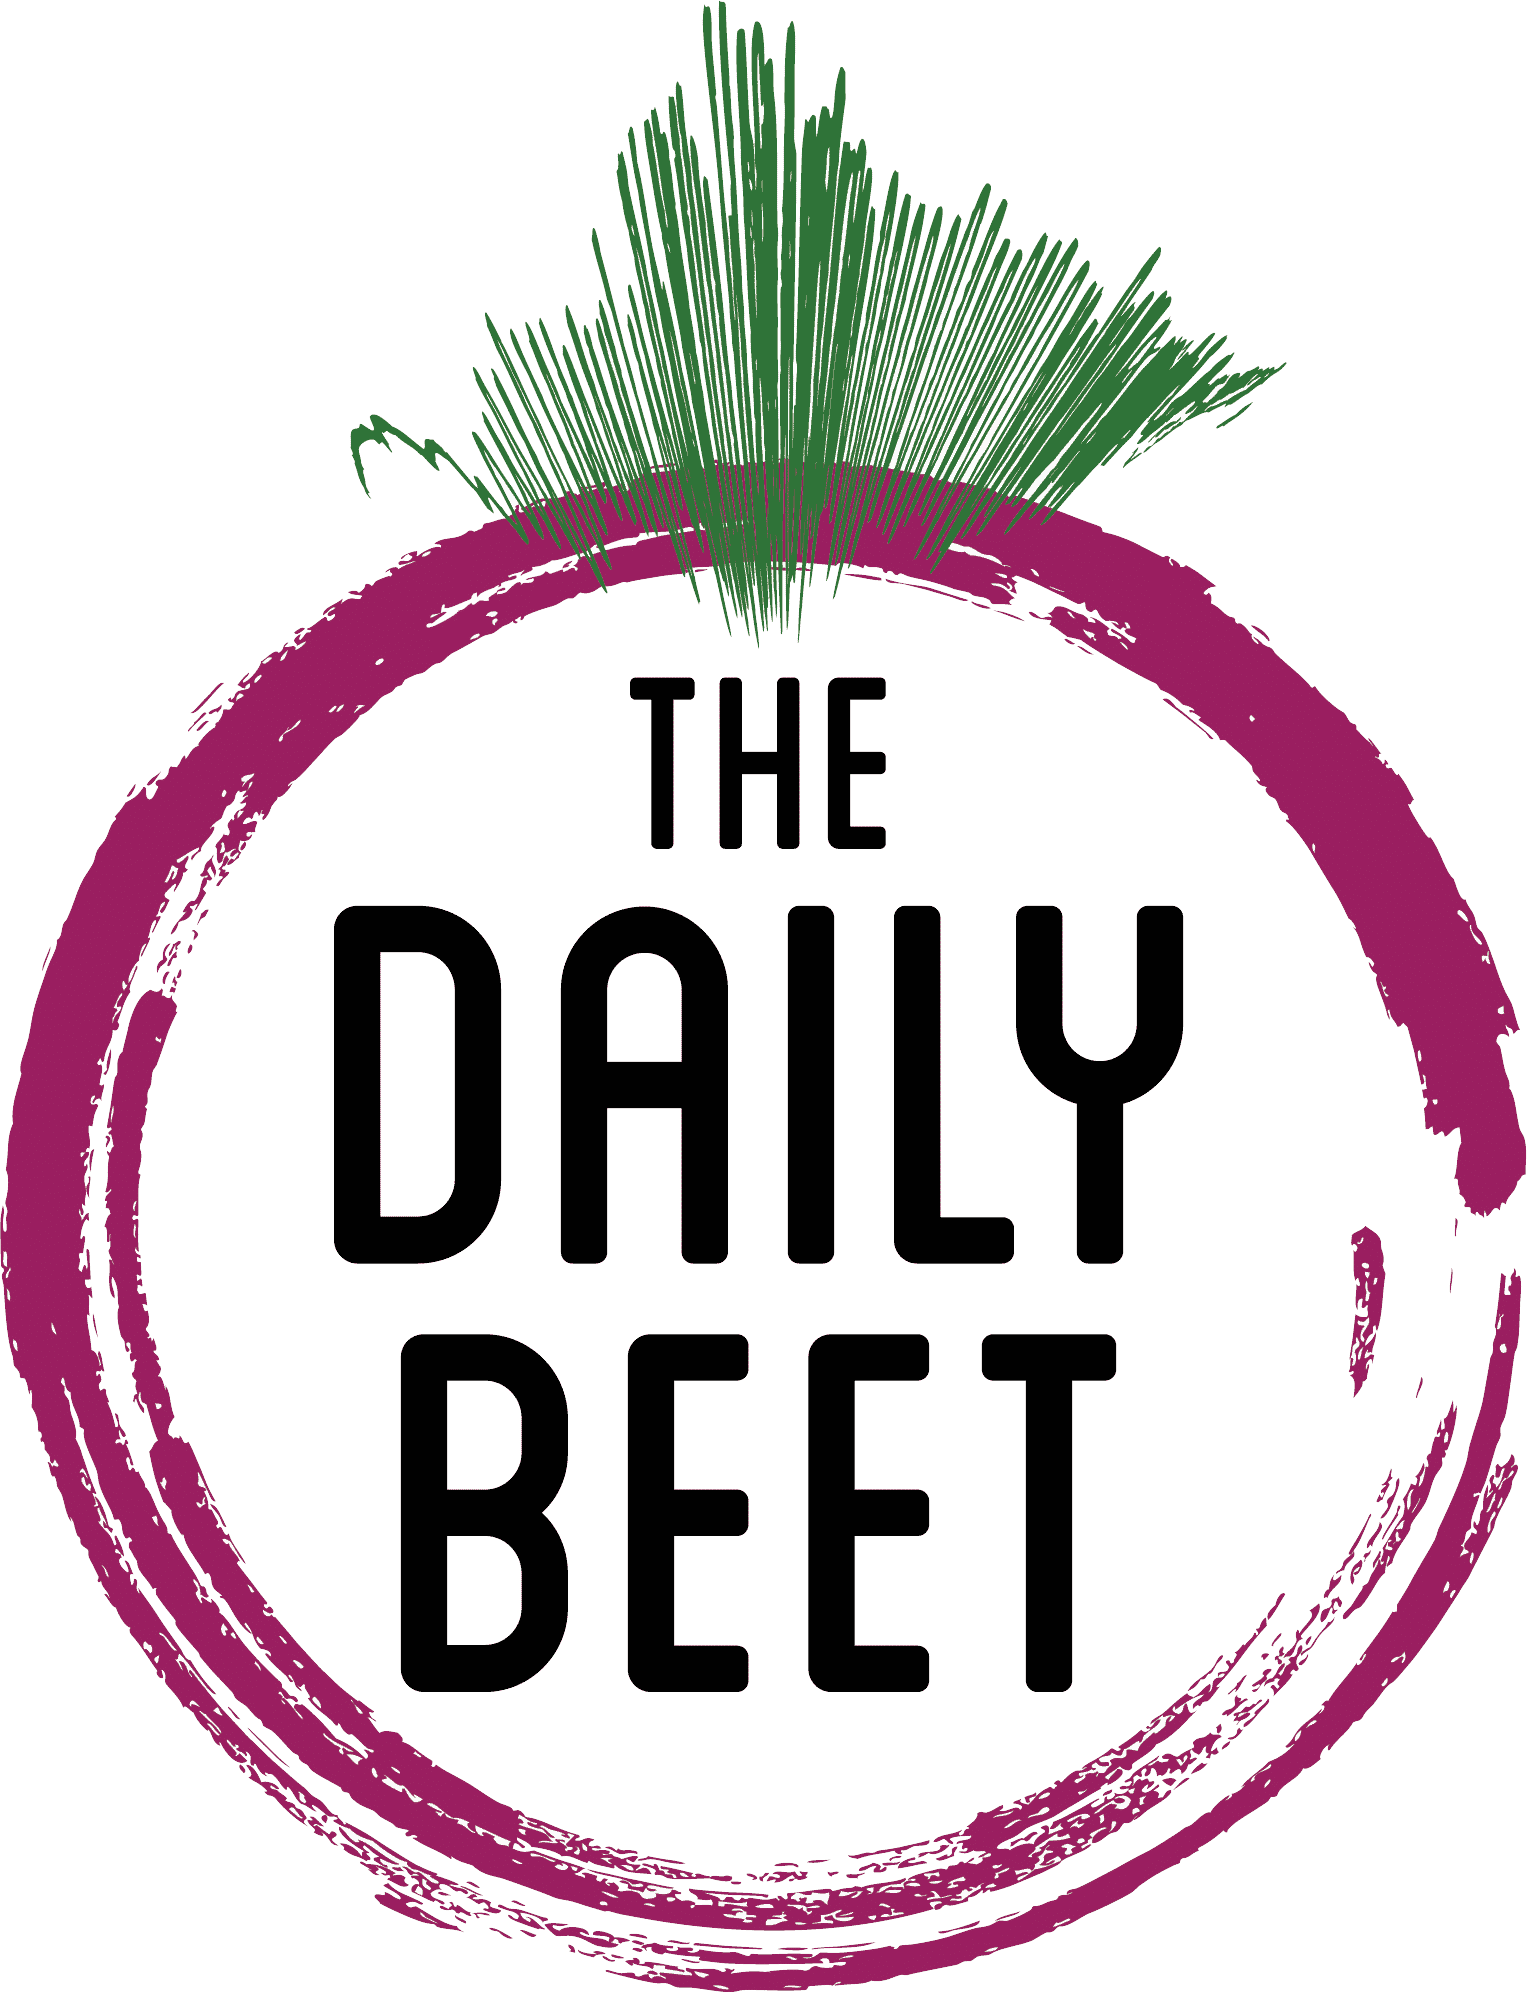 The Daily Beet - New Orleans